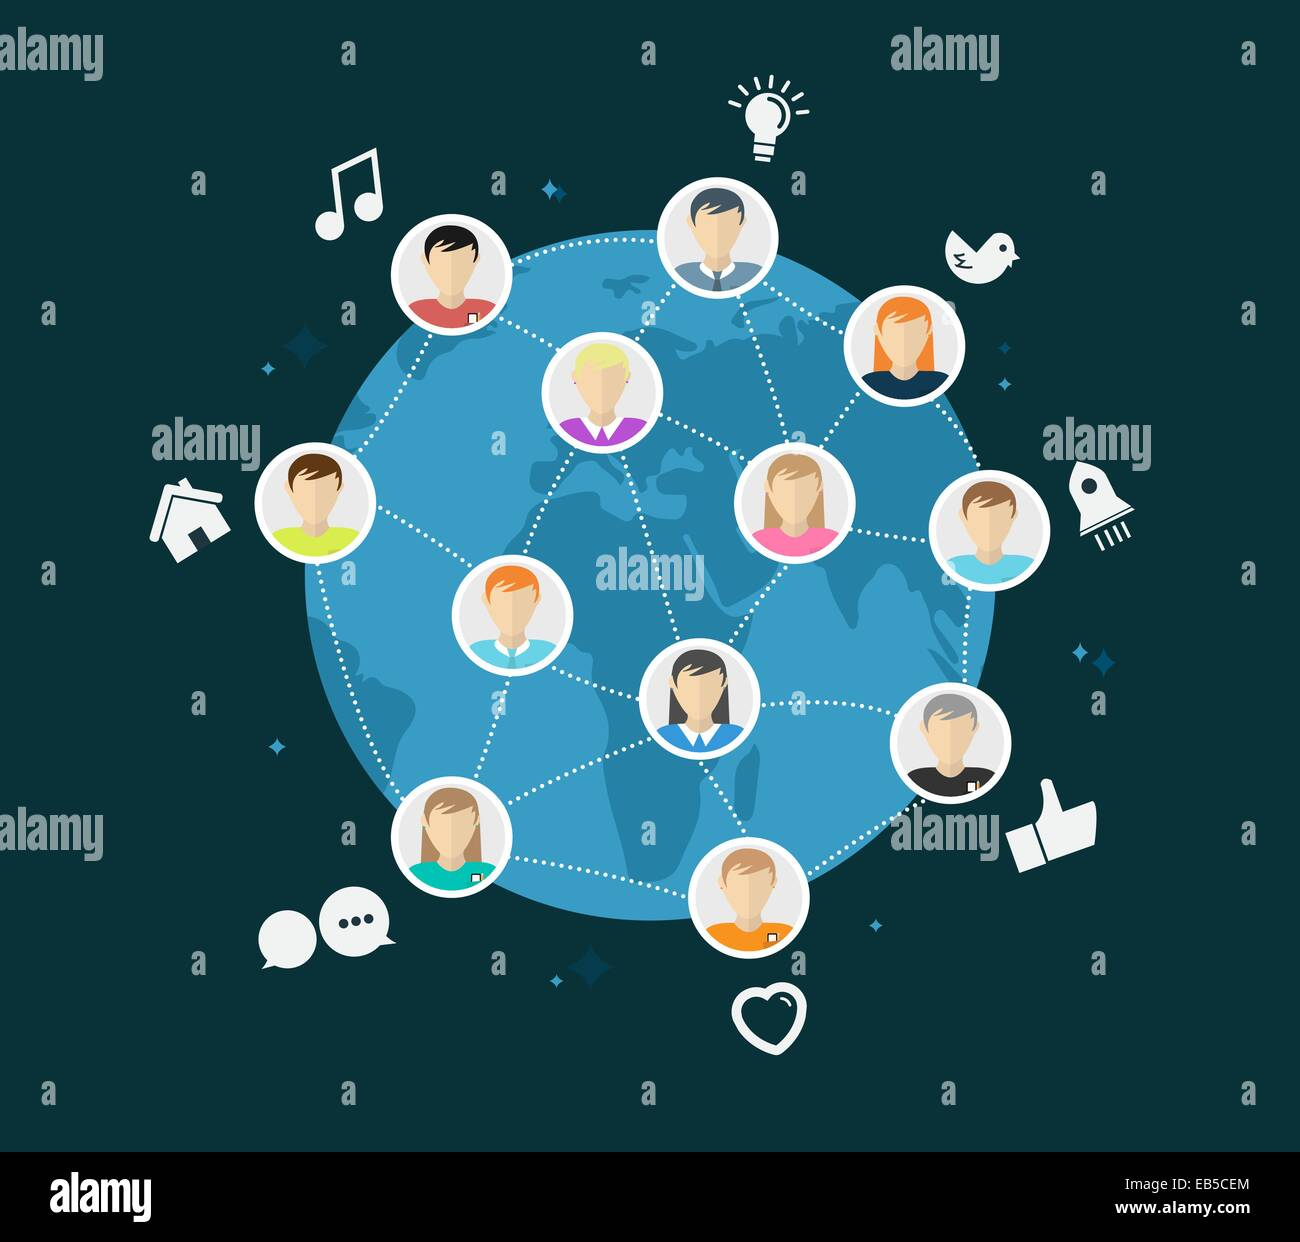 Online global community vector with app icons - Stock Vector